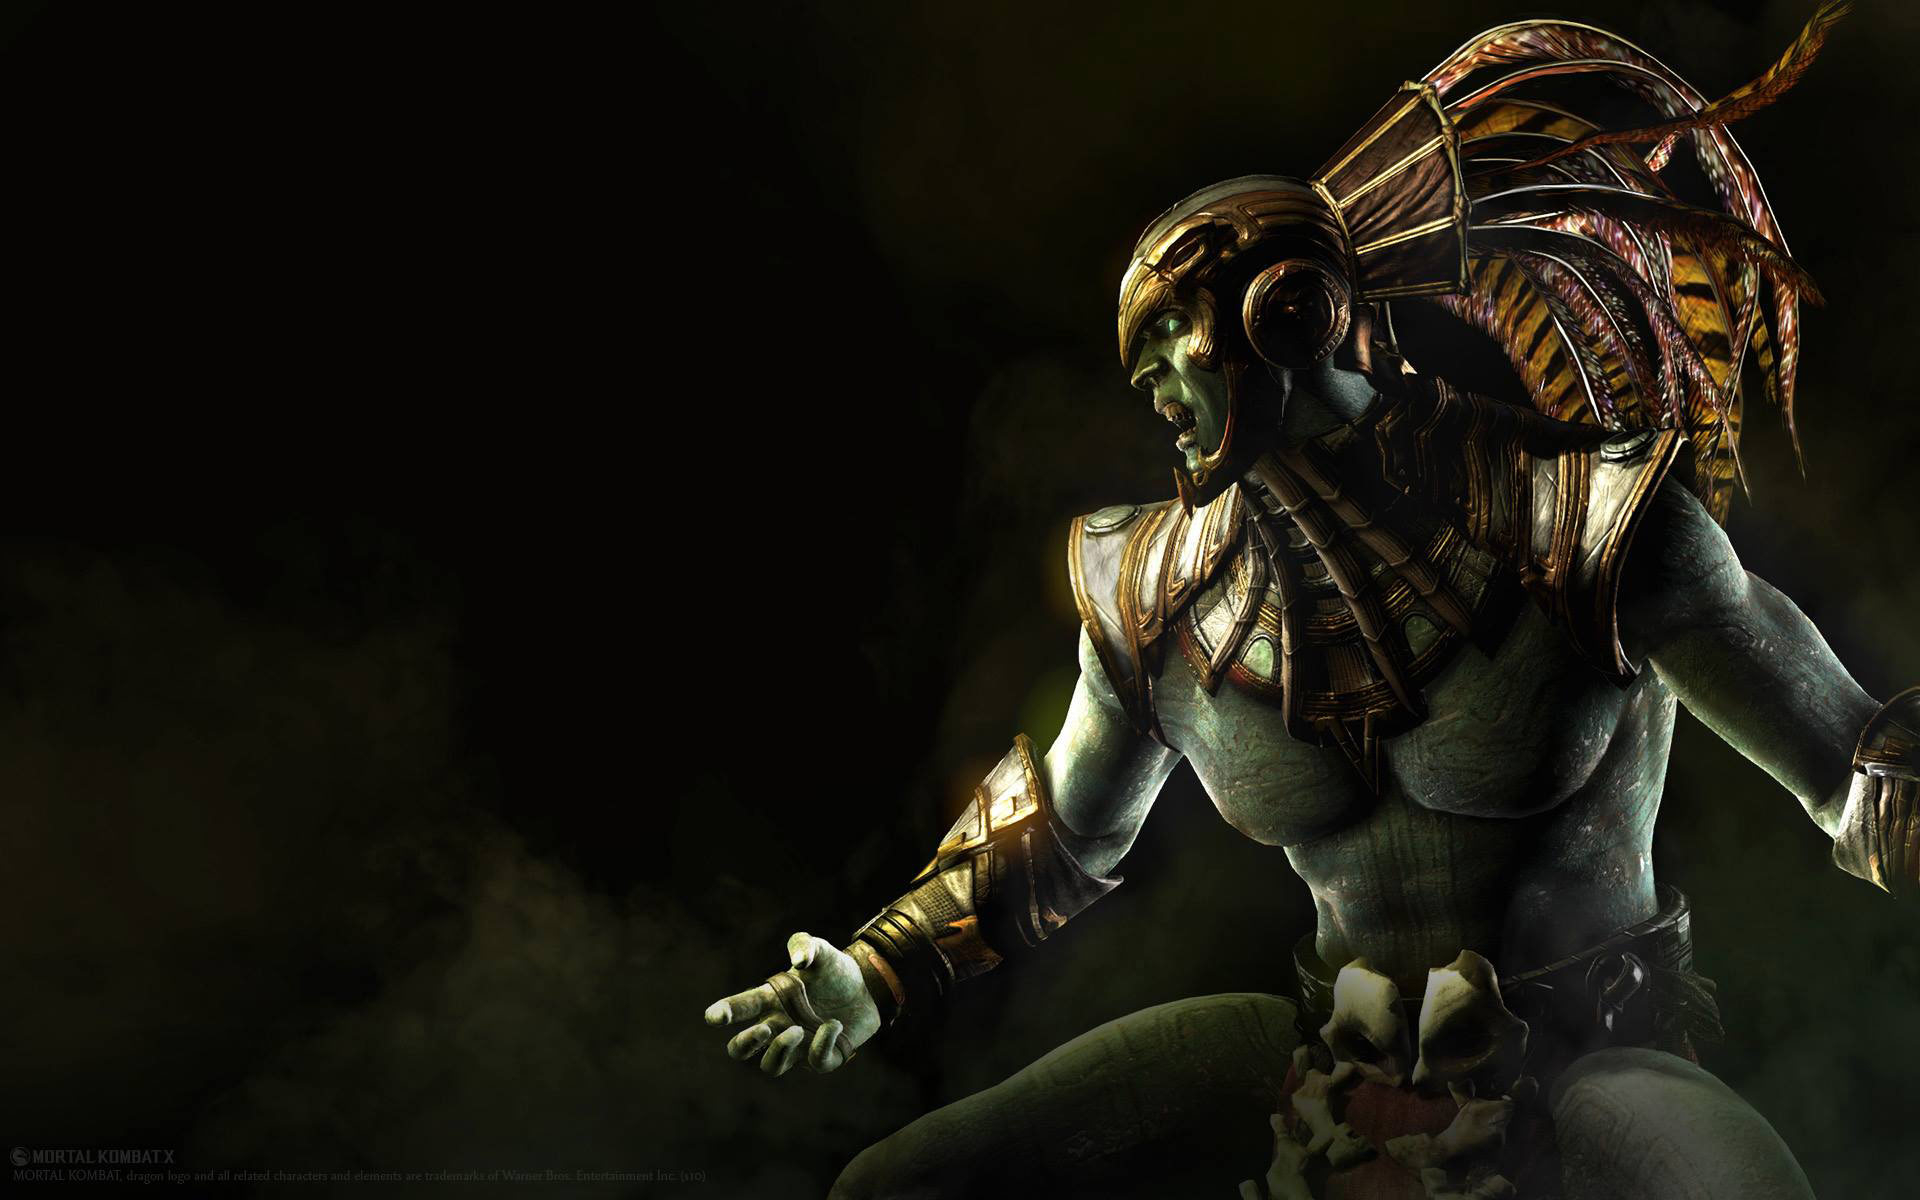 Mortal Kombat X Wallpapers Featuring Old New Characters Image 2